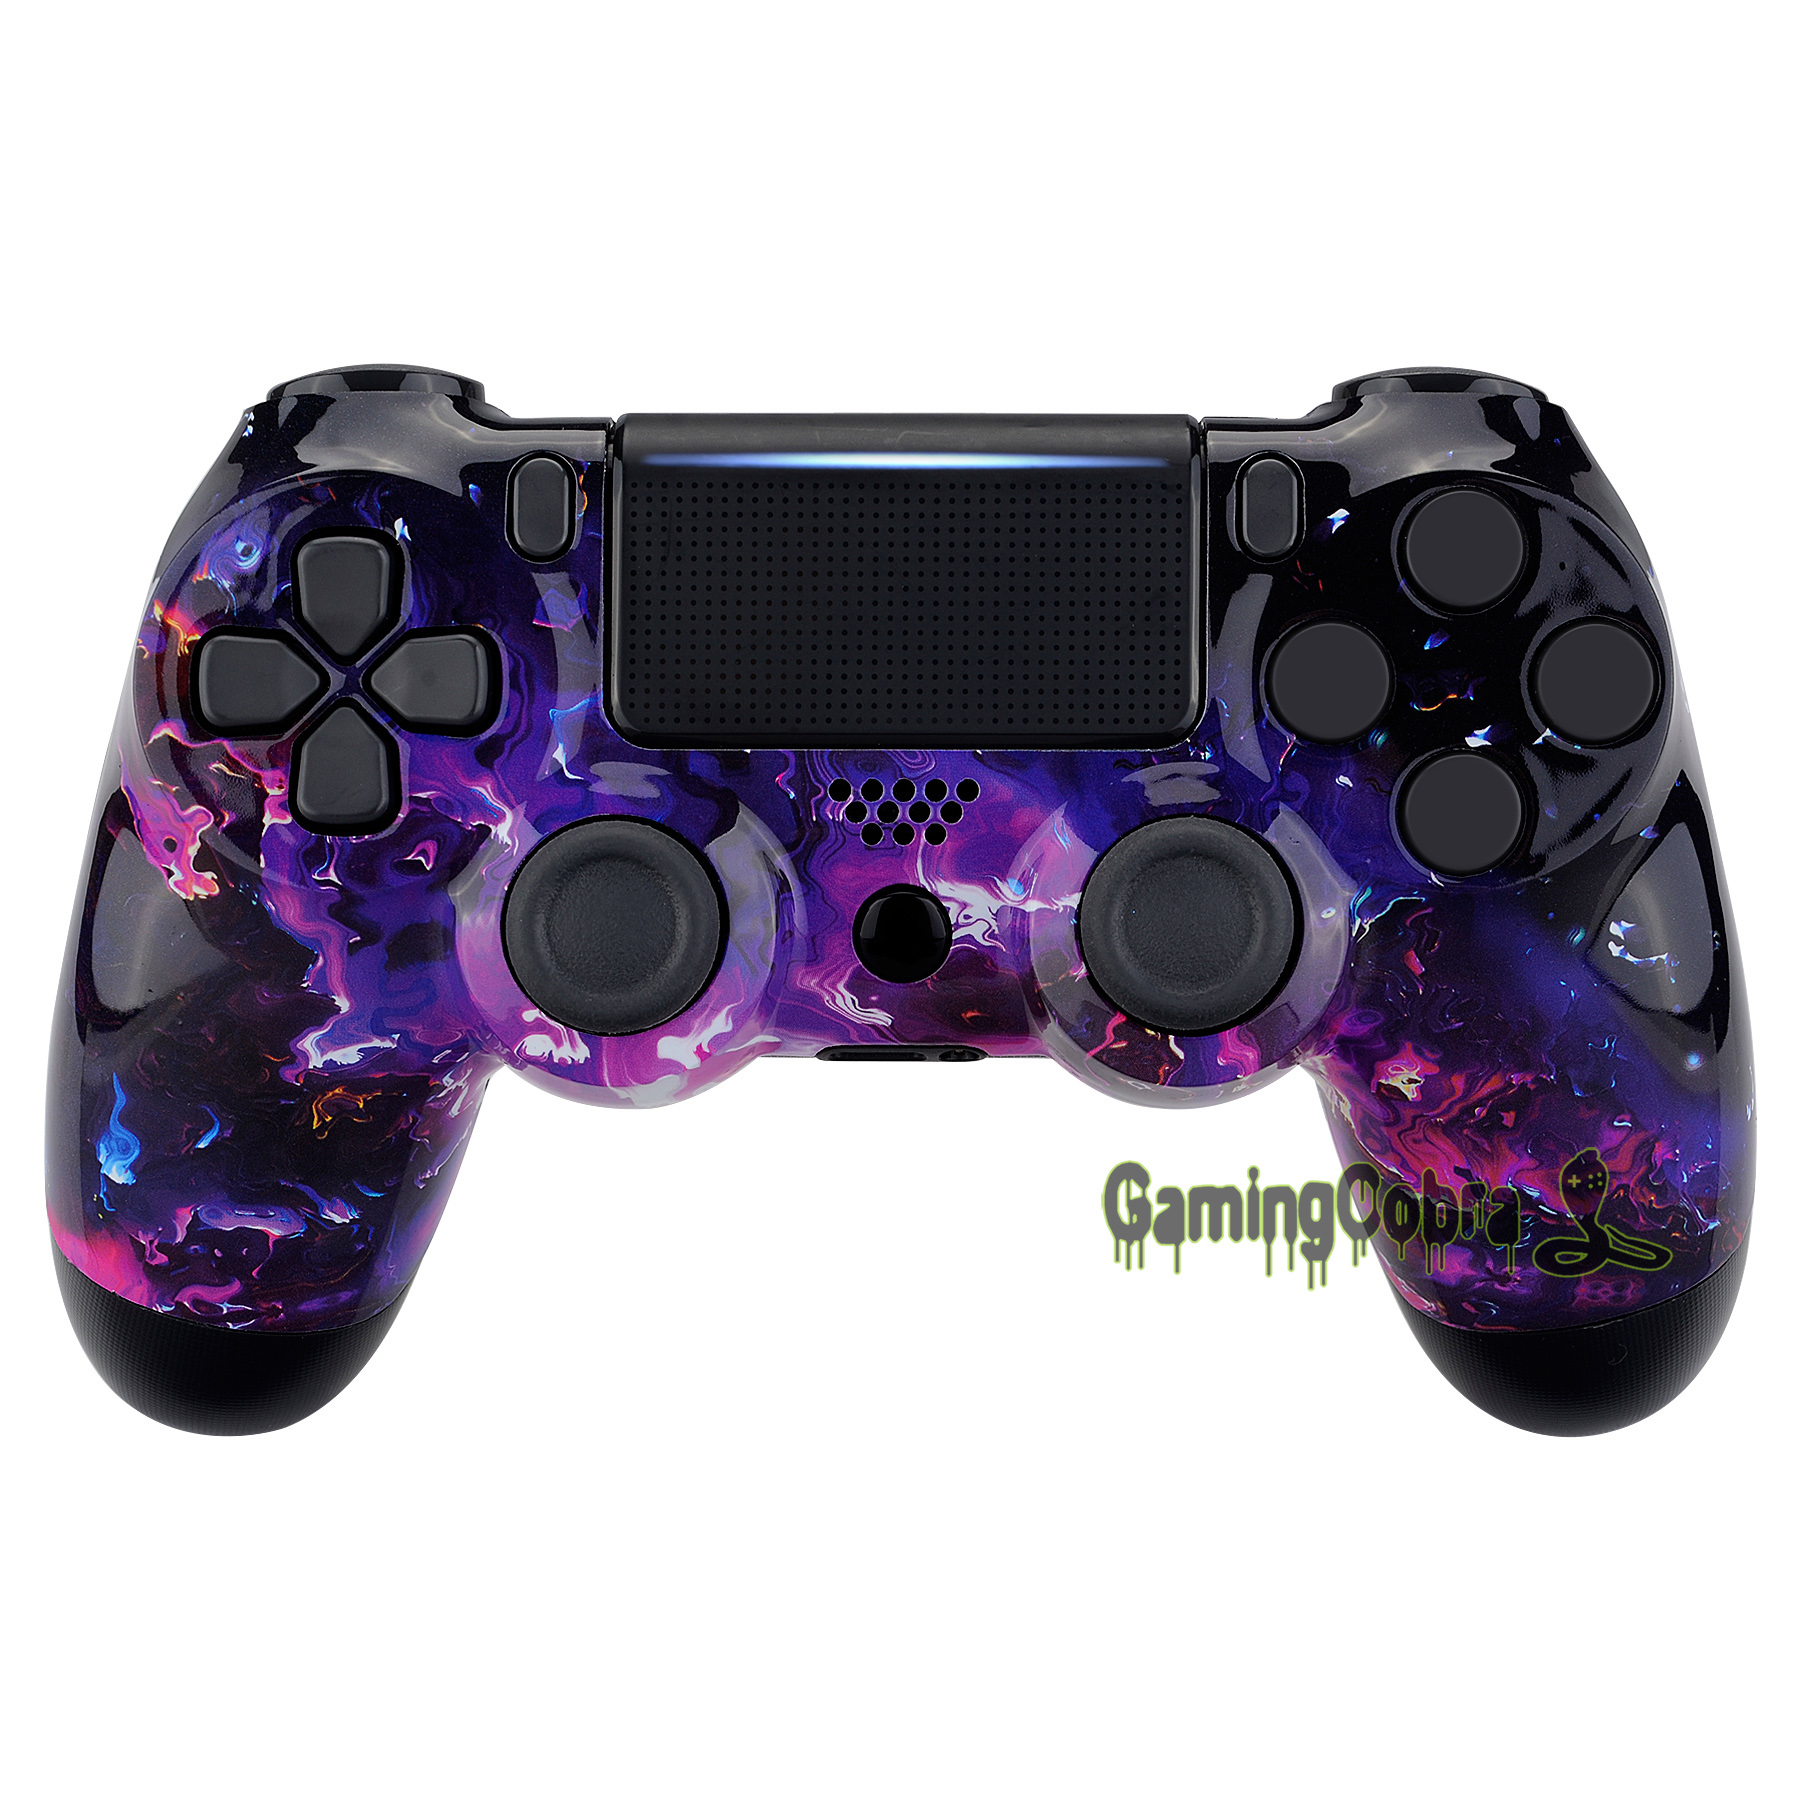 Surreal Lava Patterned Faceplate Front Housing <font><b>Shell</b></font> Cover Replacement Part for PS4 Slim Pro Controller <font><b>JDM</b></font>-040 <font><b>JDM</b></font>-050 <font><b>JDM</b></font>-<font><b>055</b></font> image